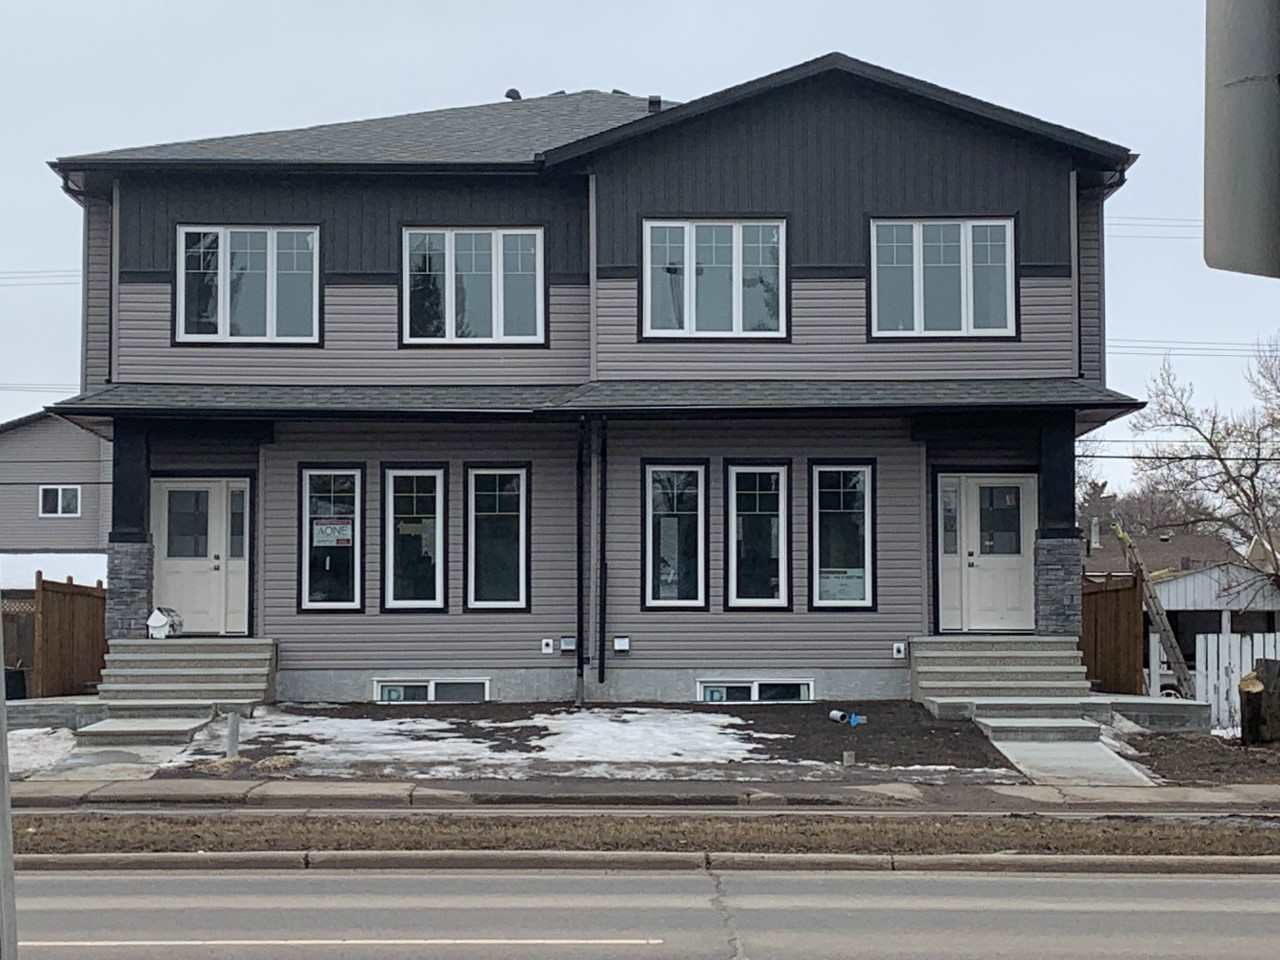 Beautiful brand new half duplex located in High Park. Loads of extras including quartz counters, quality porcelain tile and hardwood throughout. This unit boasts 3 nice size bedrooms with lots of natural light. Beautifully built and finished.